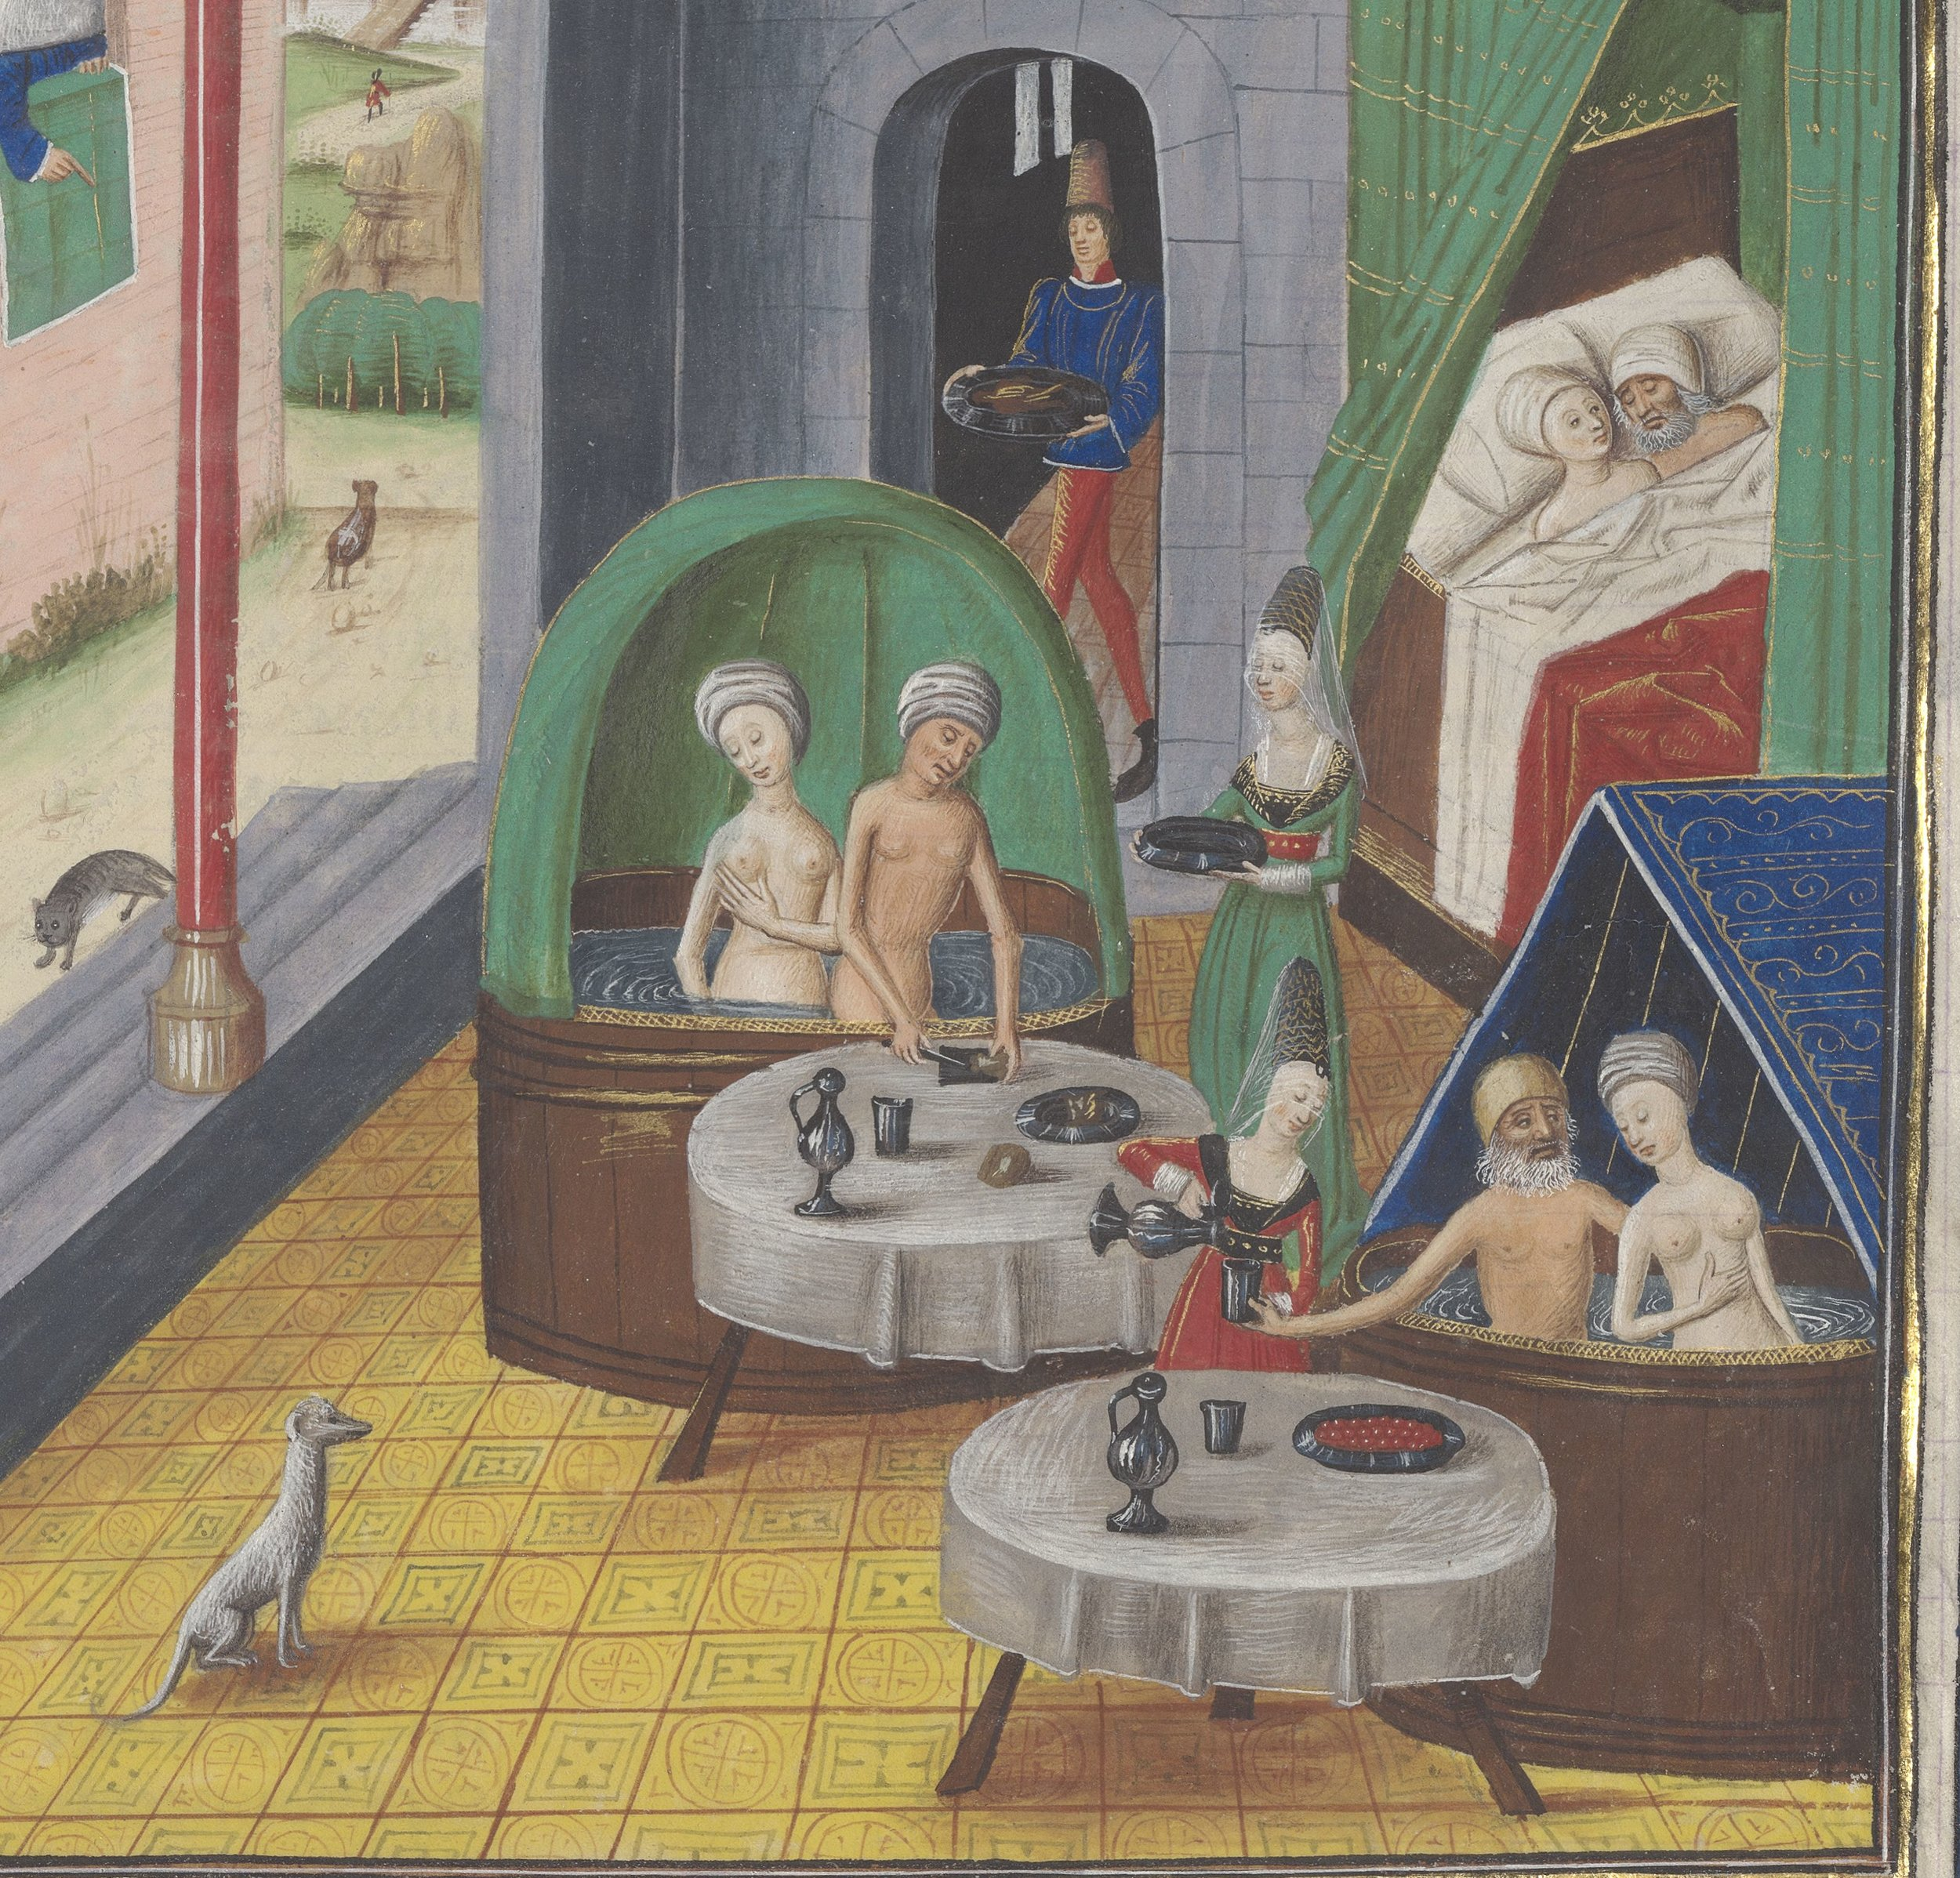 Bath house scene from  MS Arsenal 5196, fol. 372r , digitized by the BNF at Gallica. A nice  description .